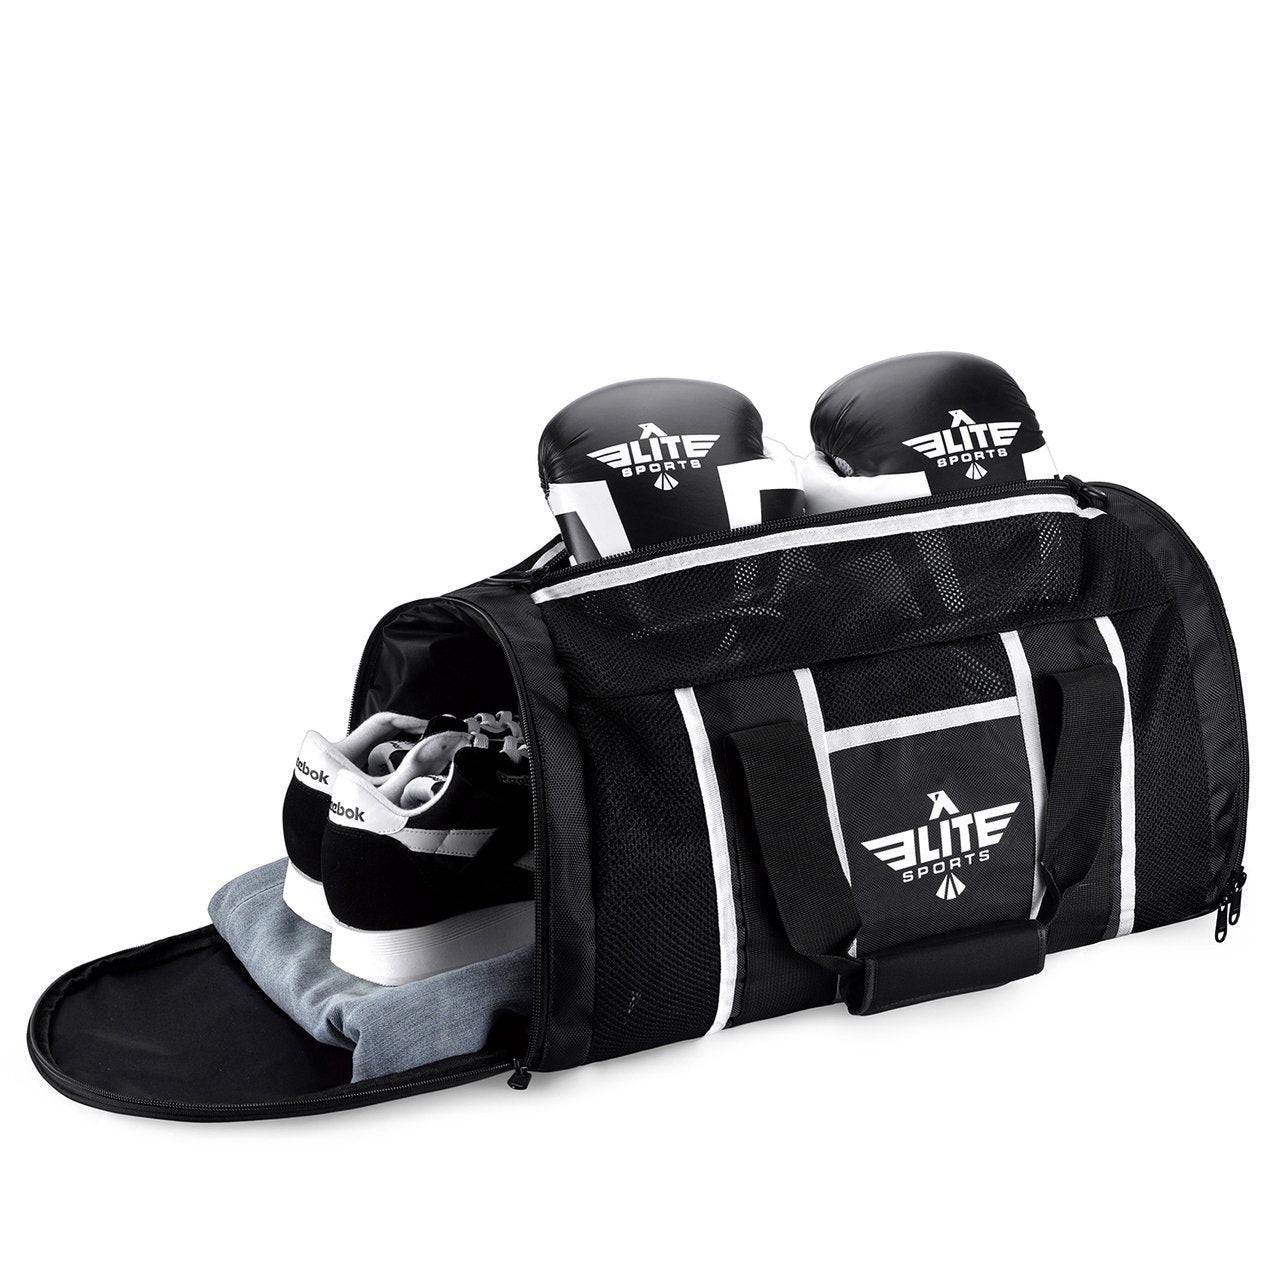 Load image into Gallery viewer, Elite Sports Mesh Black Large Taekwondo Gear Gym Bag